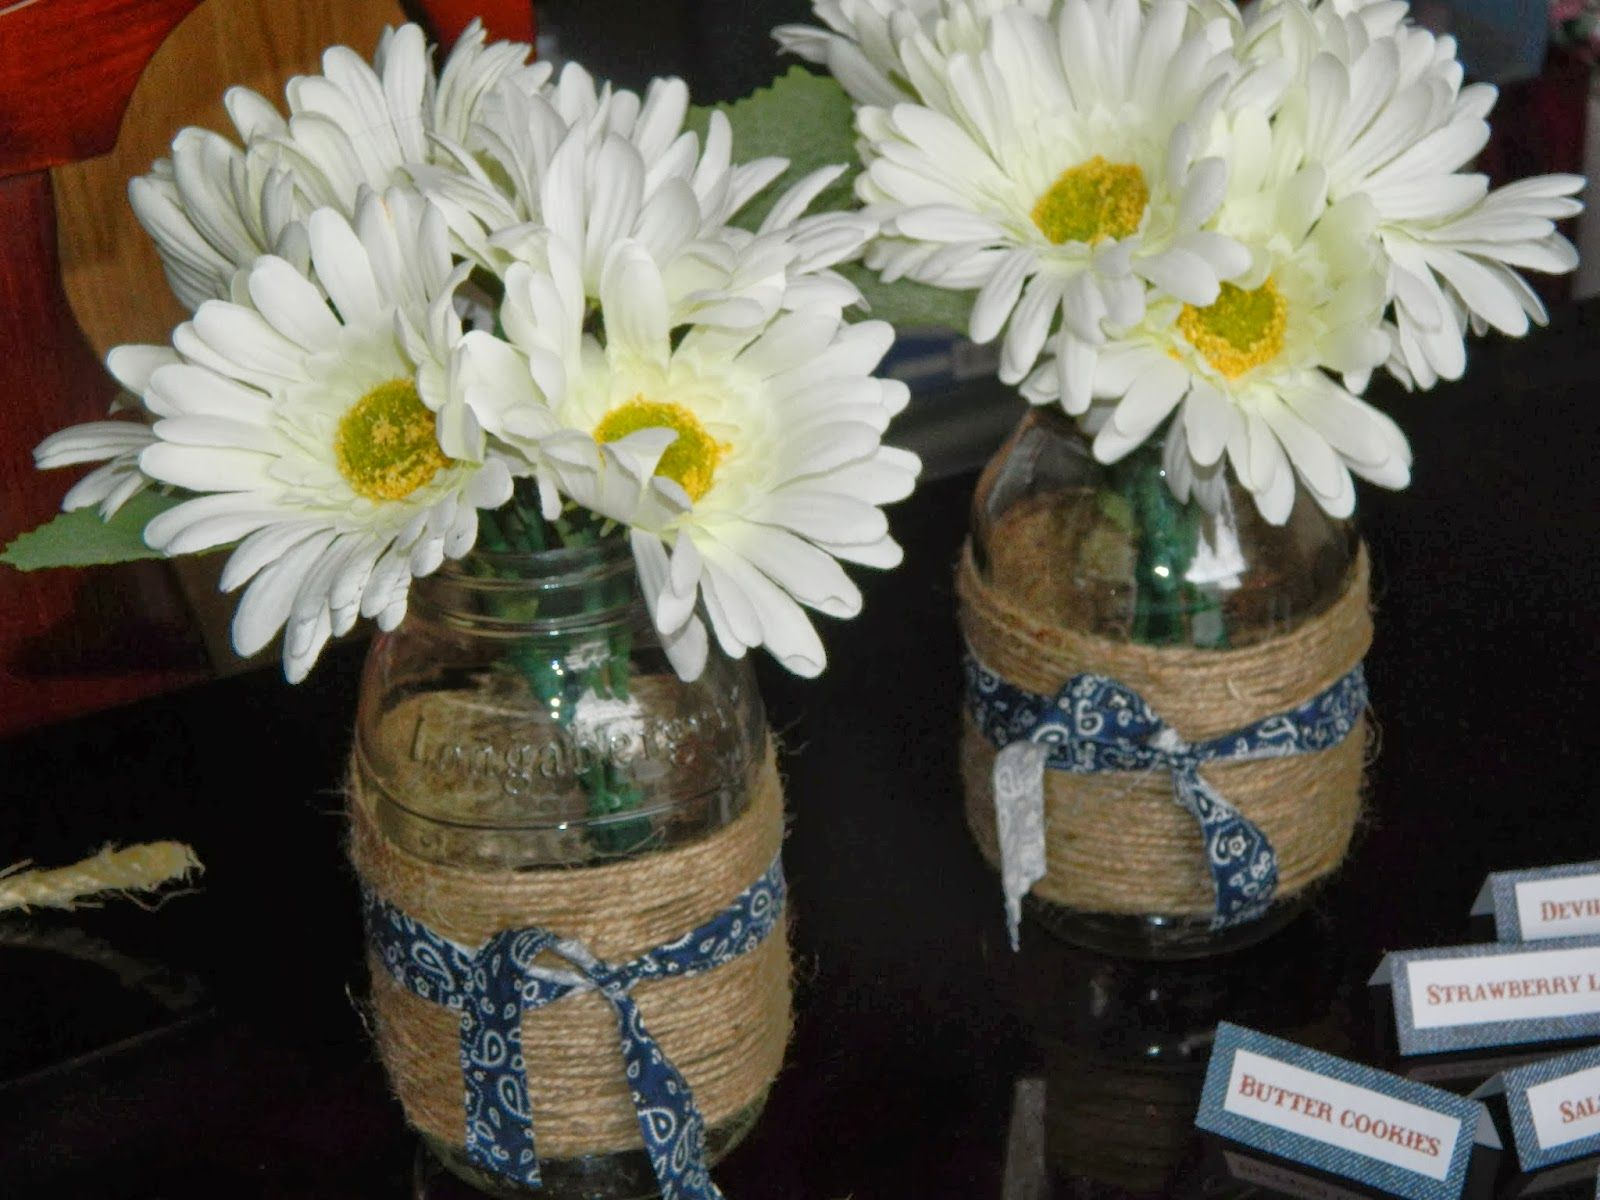 For Cowboy Baby Shower Centerpieces